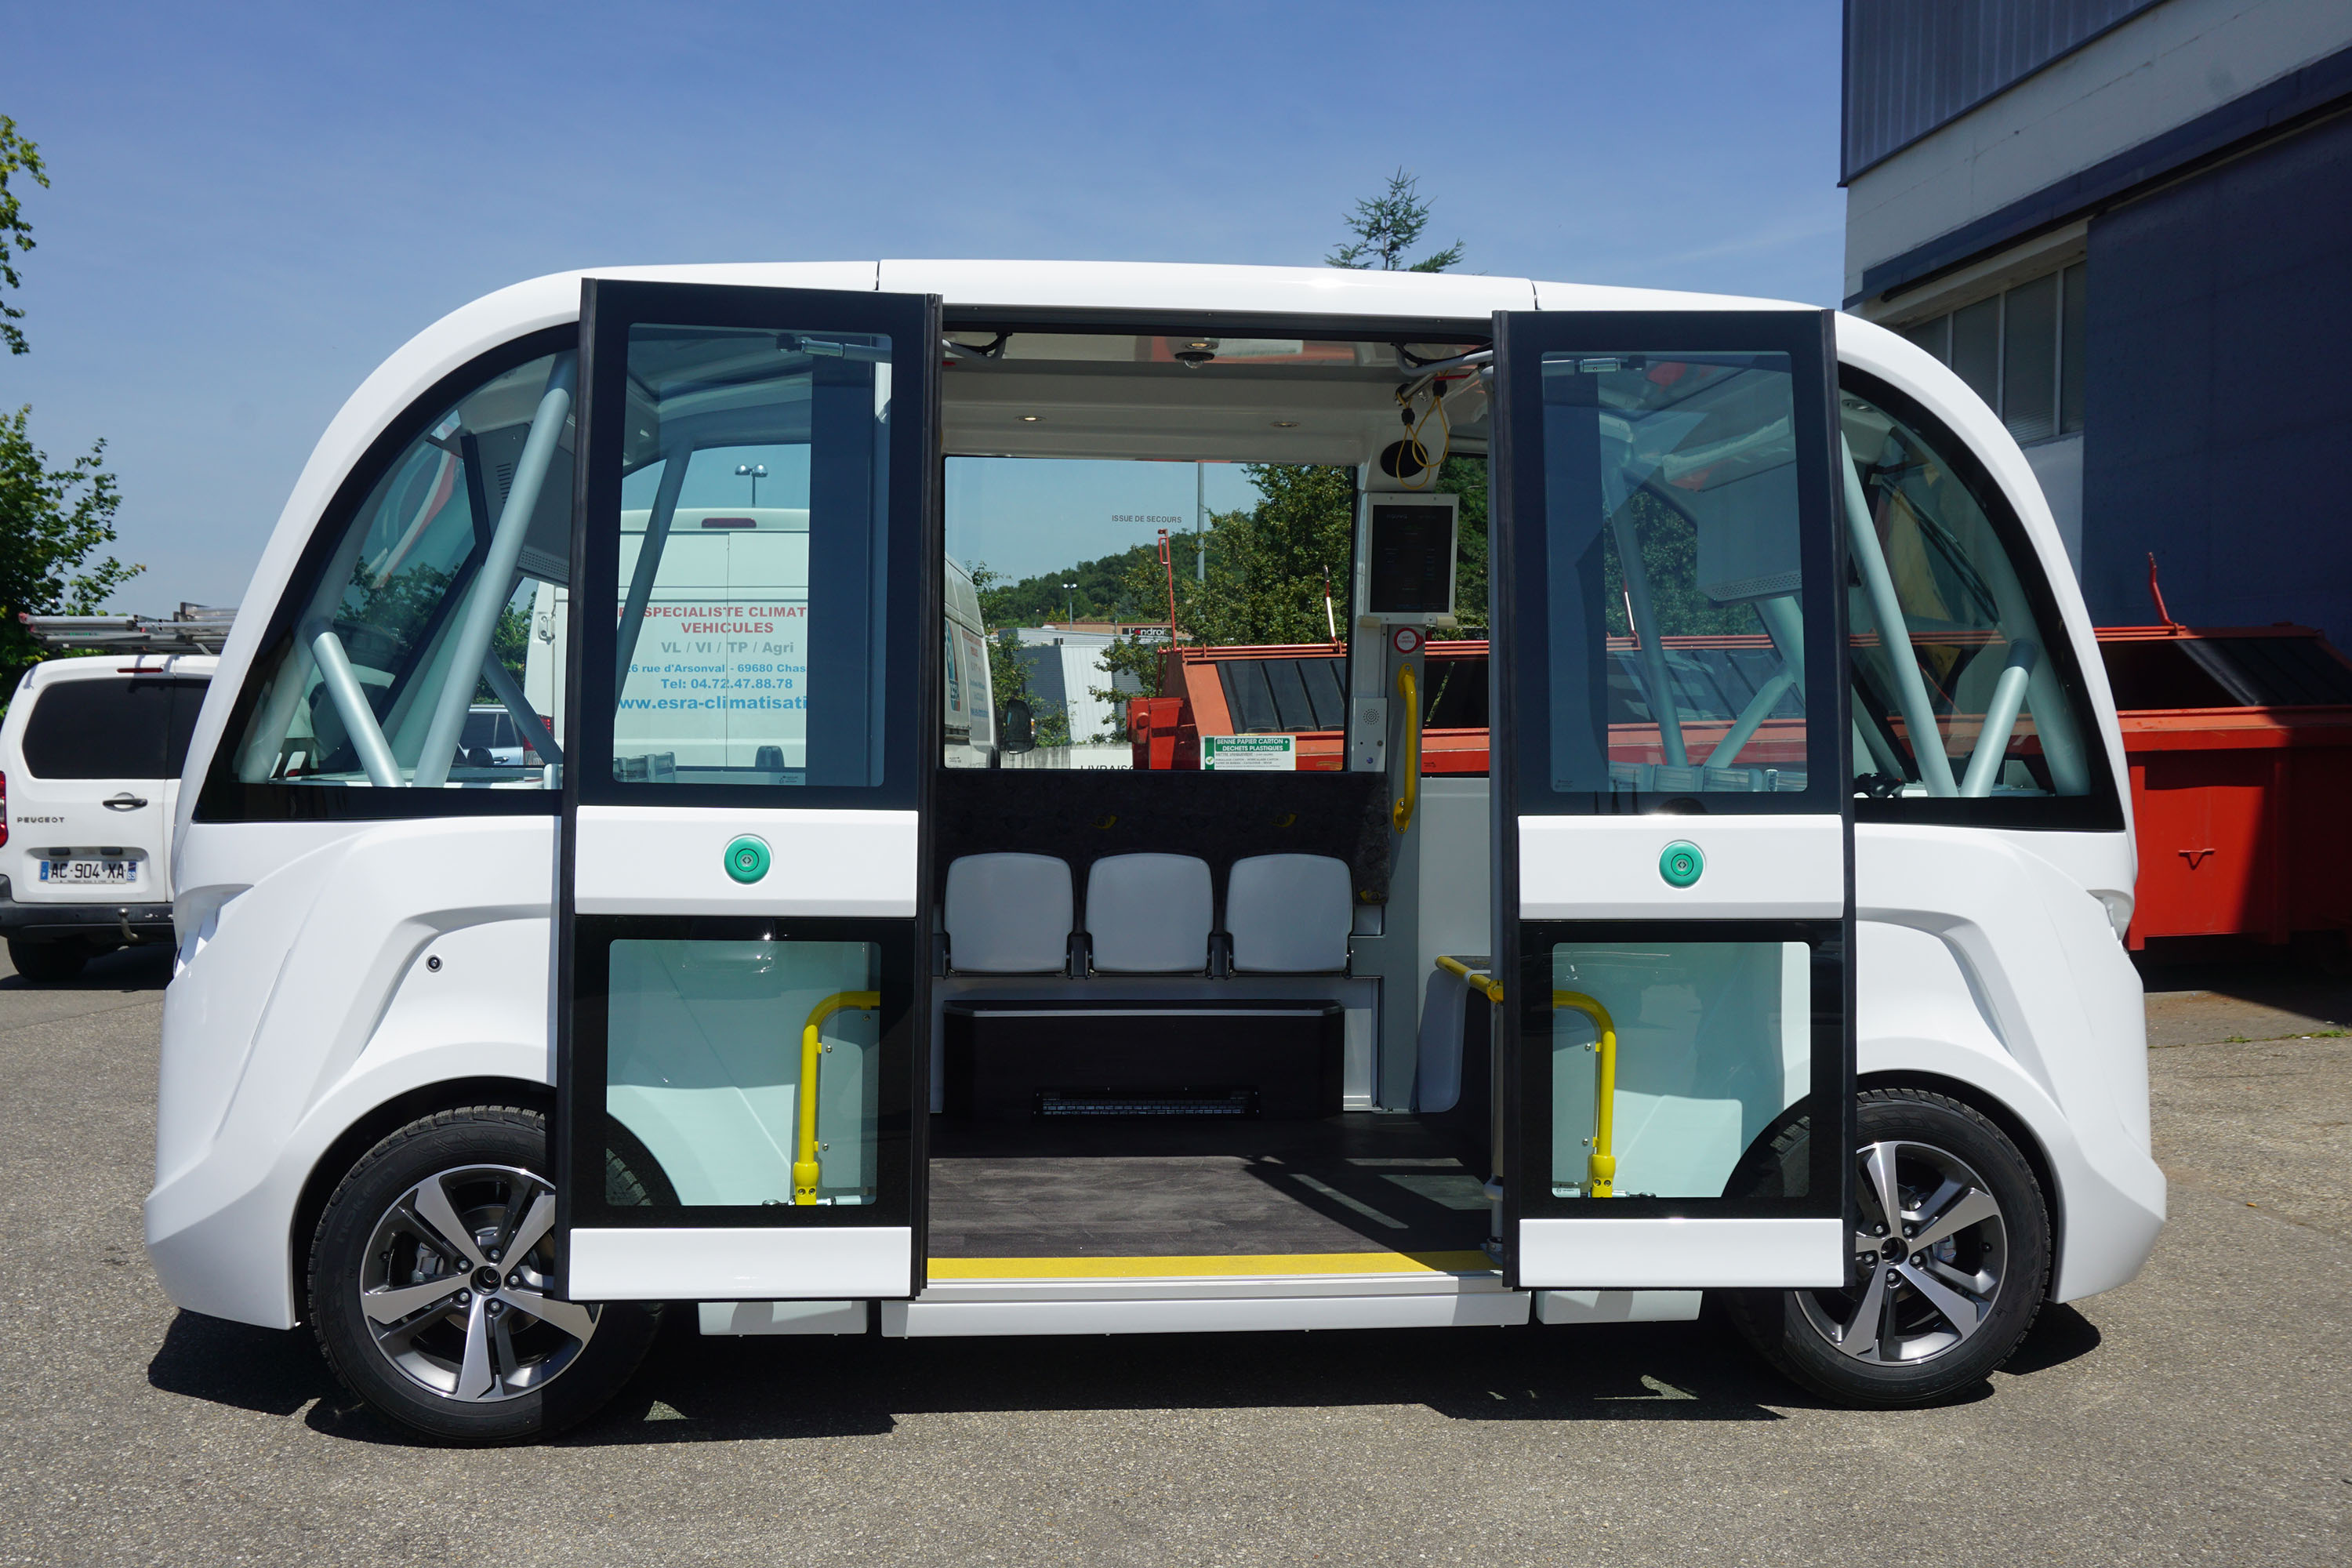 Unique driverless vehicle on display Nov. 15-18 in Madison